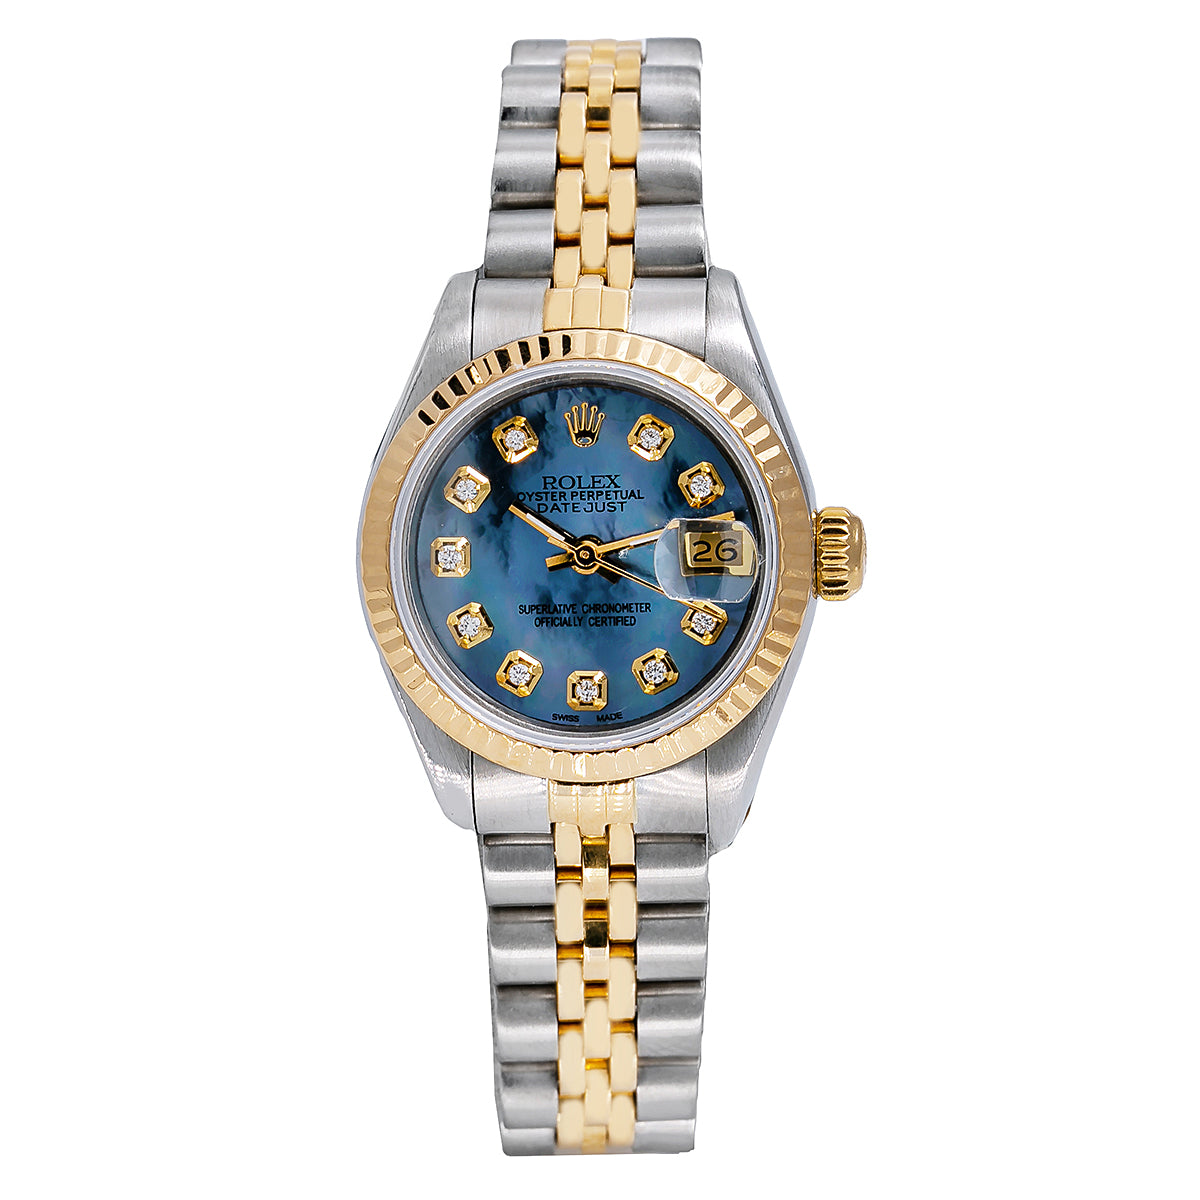 Rolex Datejust Two Tone Diamond Watch, 69173 26mm, Sky Blue Dial with Diamond Hour Marks